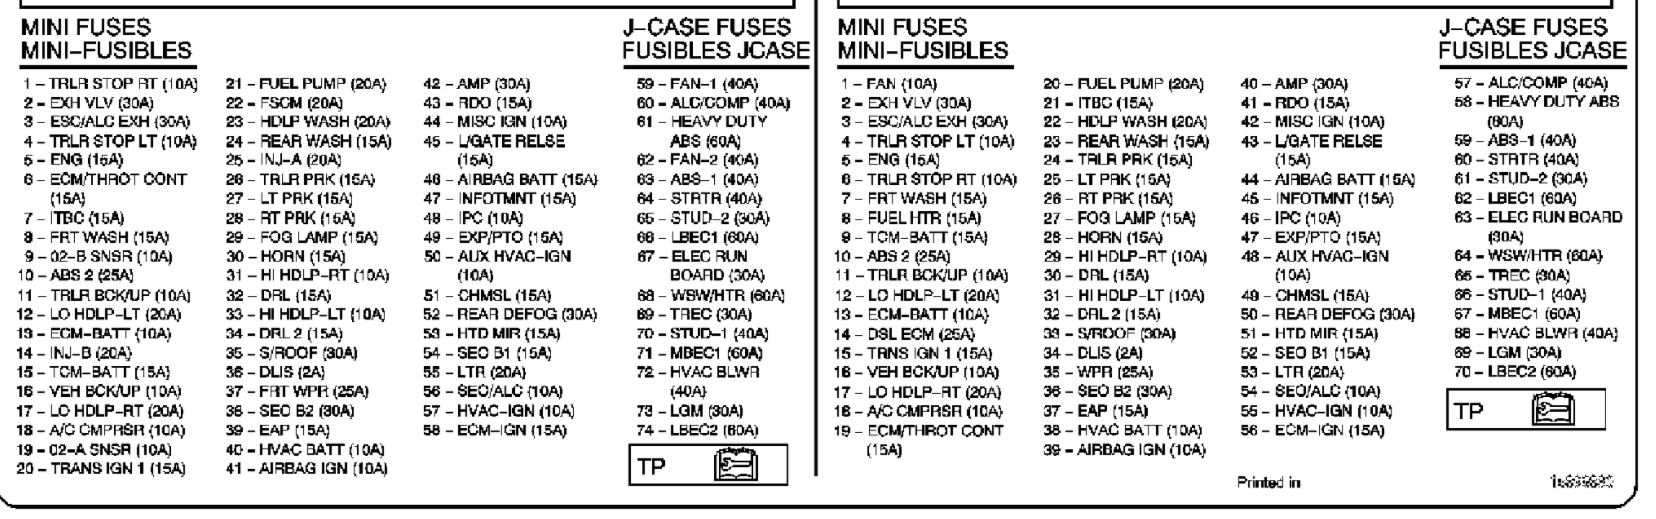 Headlights Wont Come On Chevy 2007 1500p U130000v8 The 2002 Chevrolet Express Under Dash Fuse Diagram Thumb